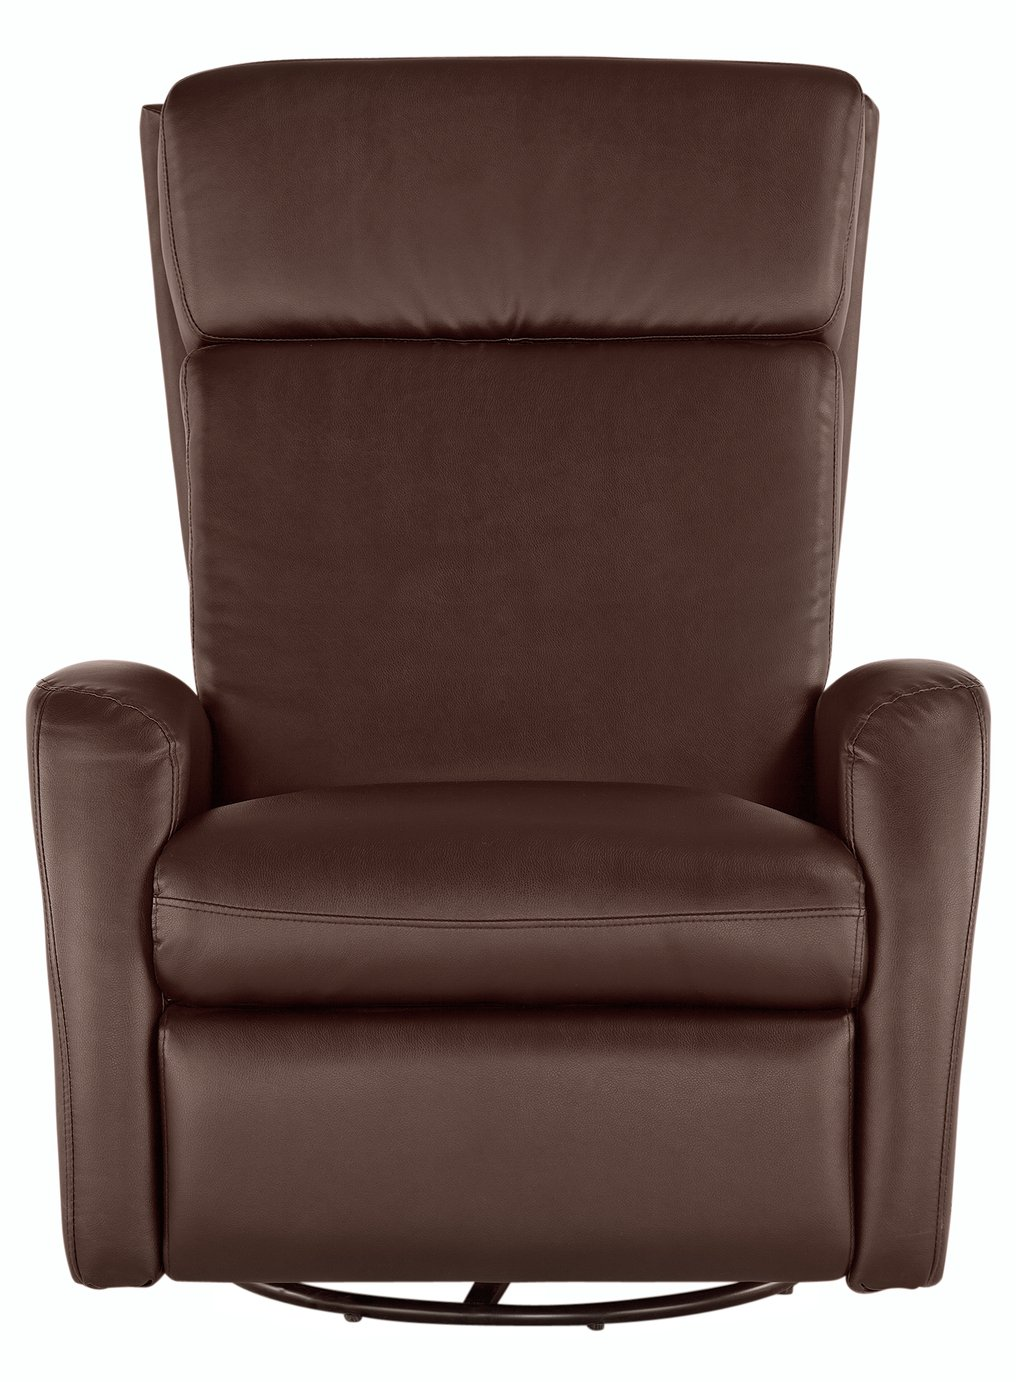 Argos Home Rock-R-Round Recliner Chair - Chocolate